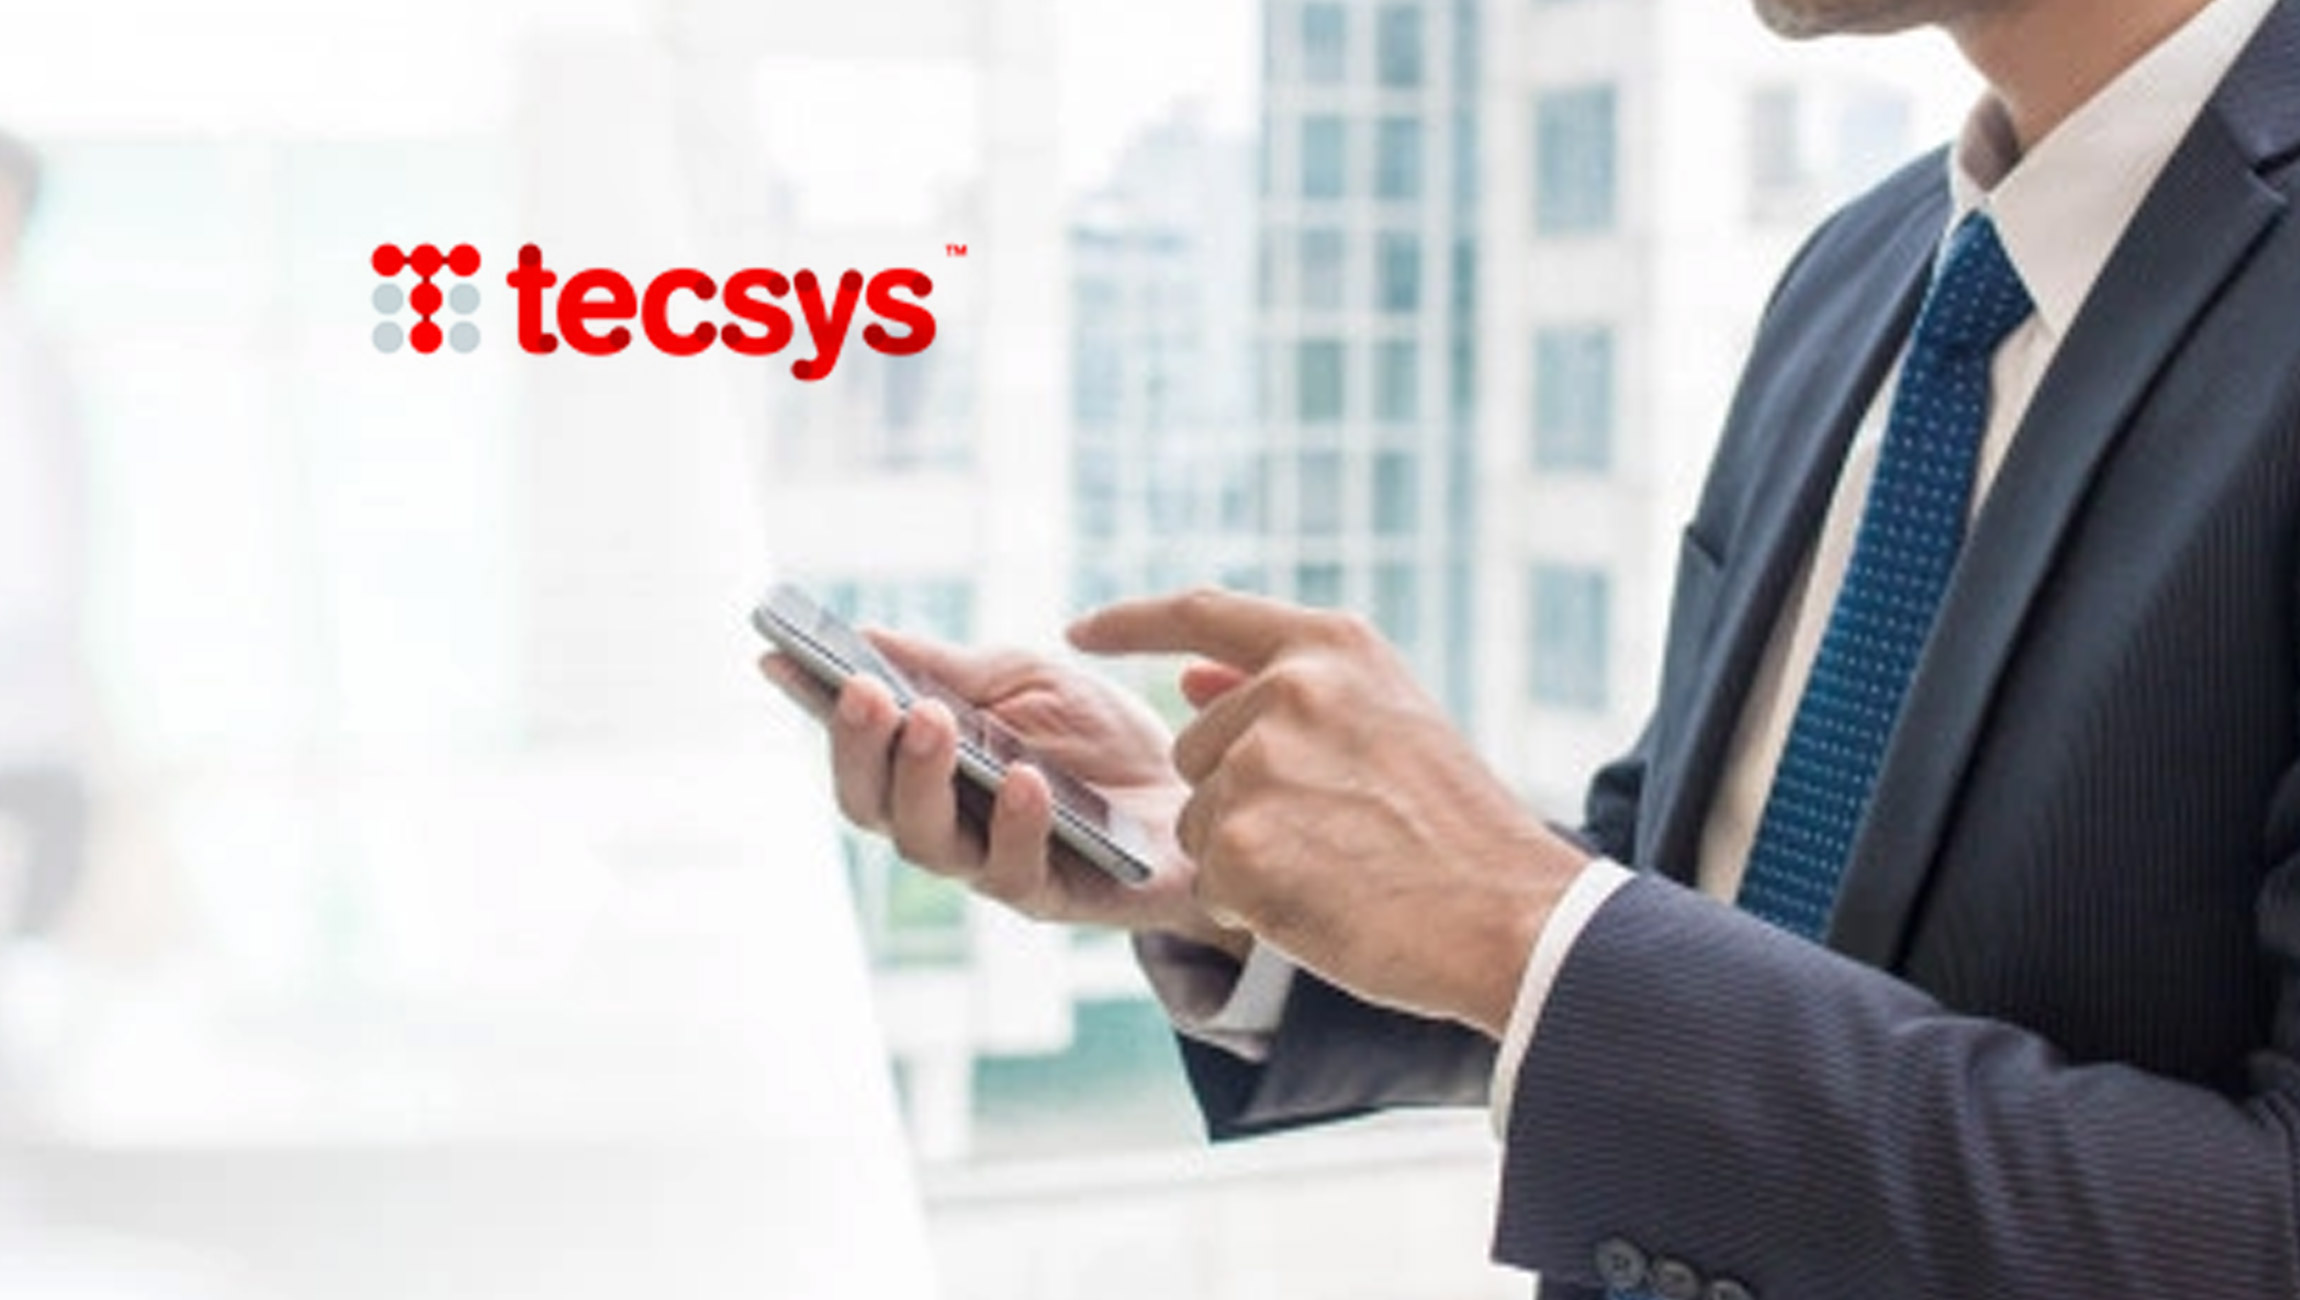 Leading Australian Fashion Chain Politix Leverages Tecsys' Unified Commerce Platform to Provide Customers a Faster and More Efficient Order Fulfillment Experience